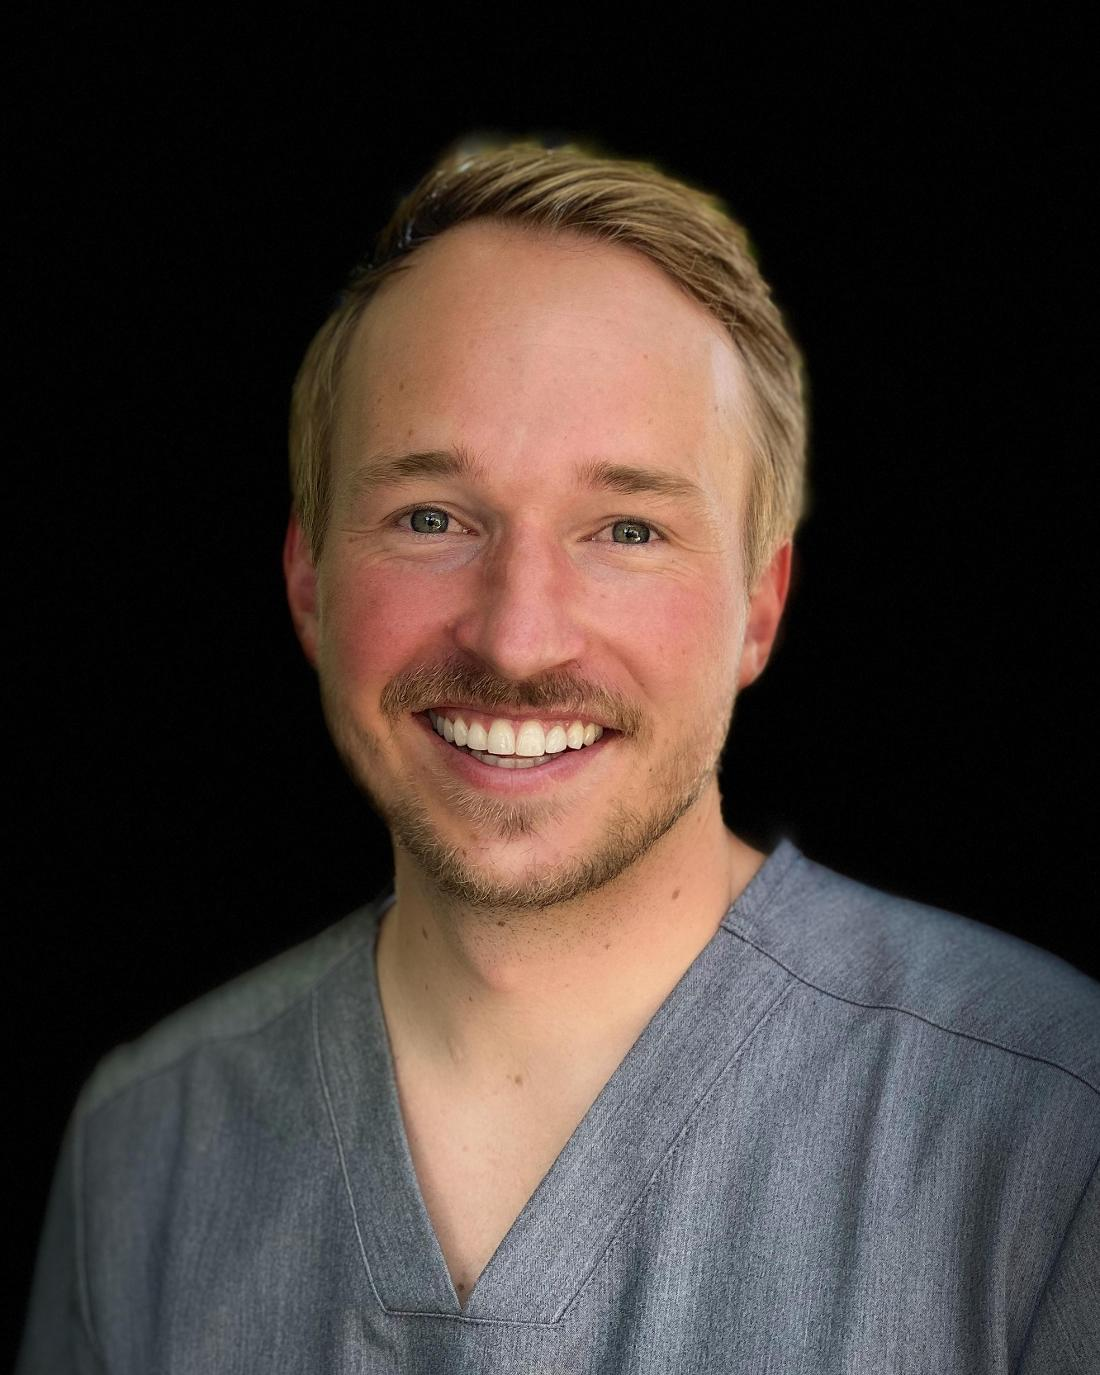 Chad Cooley dentist head shot